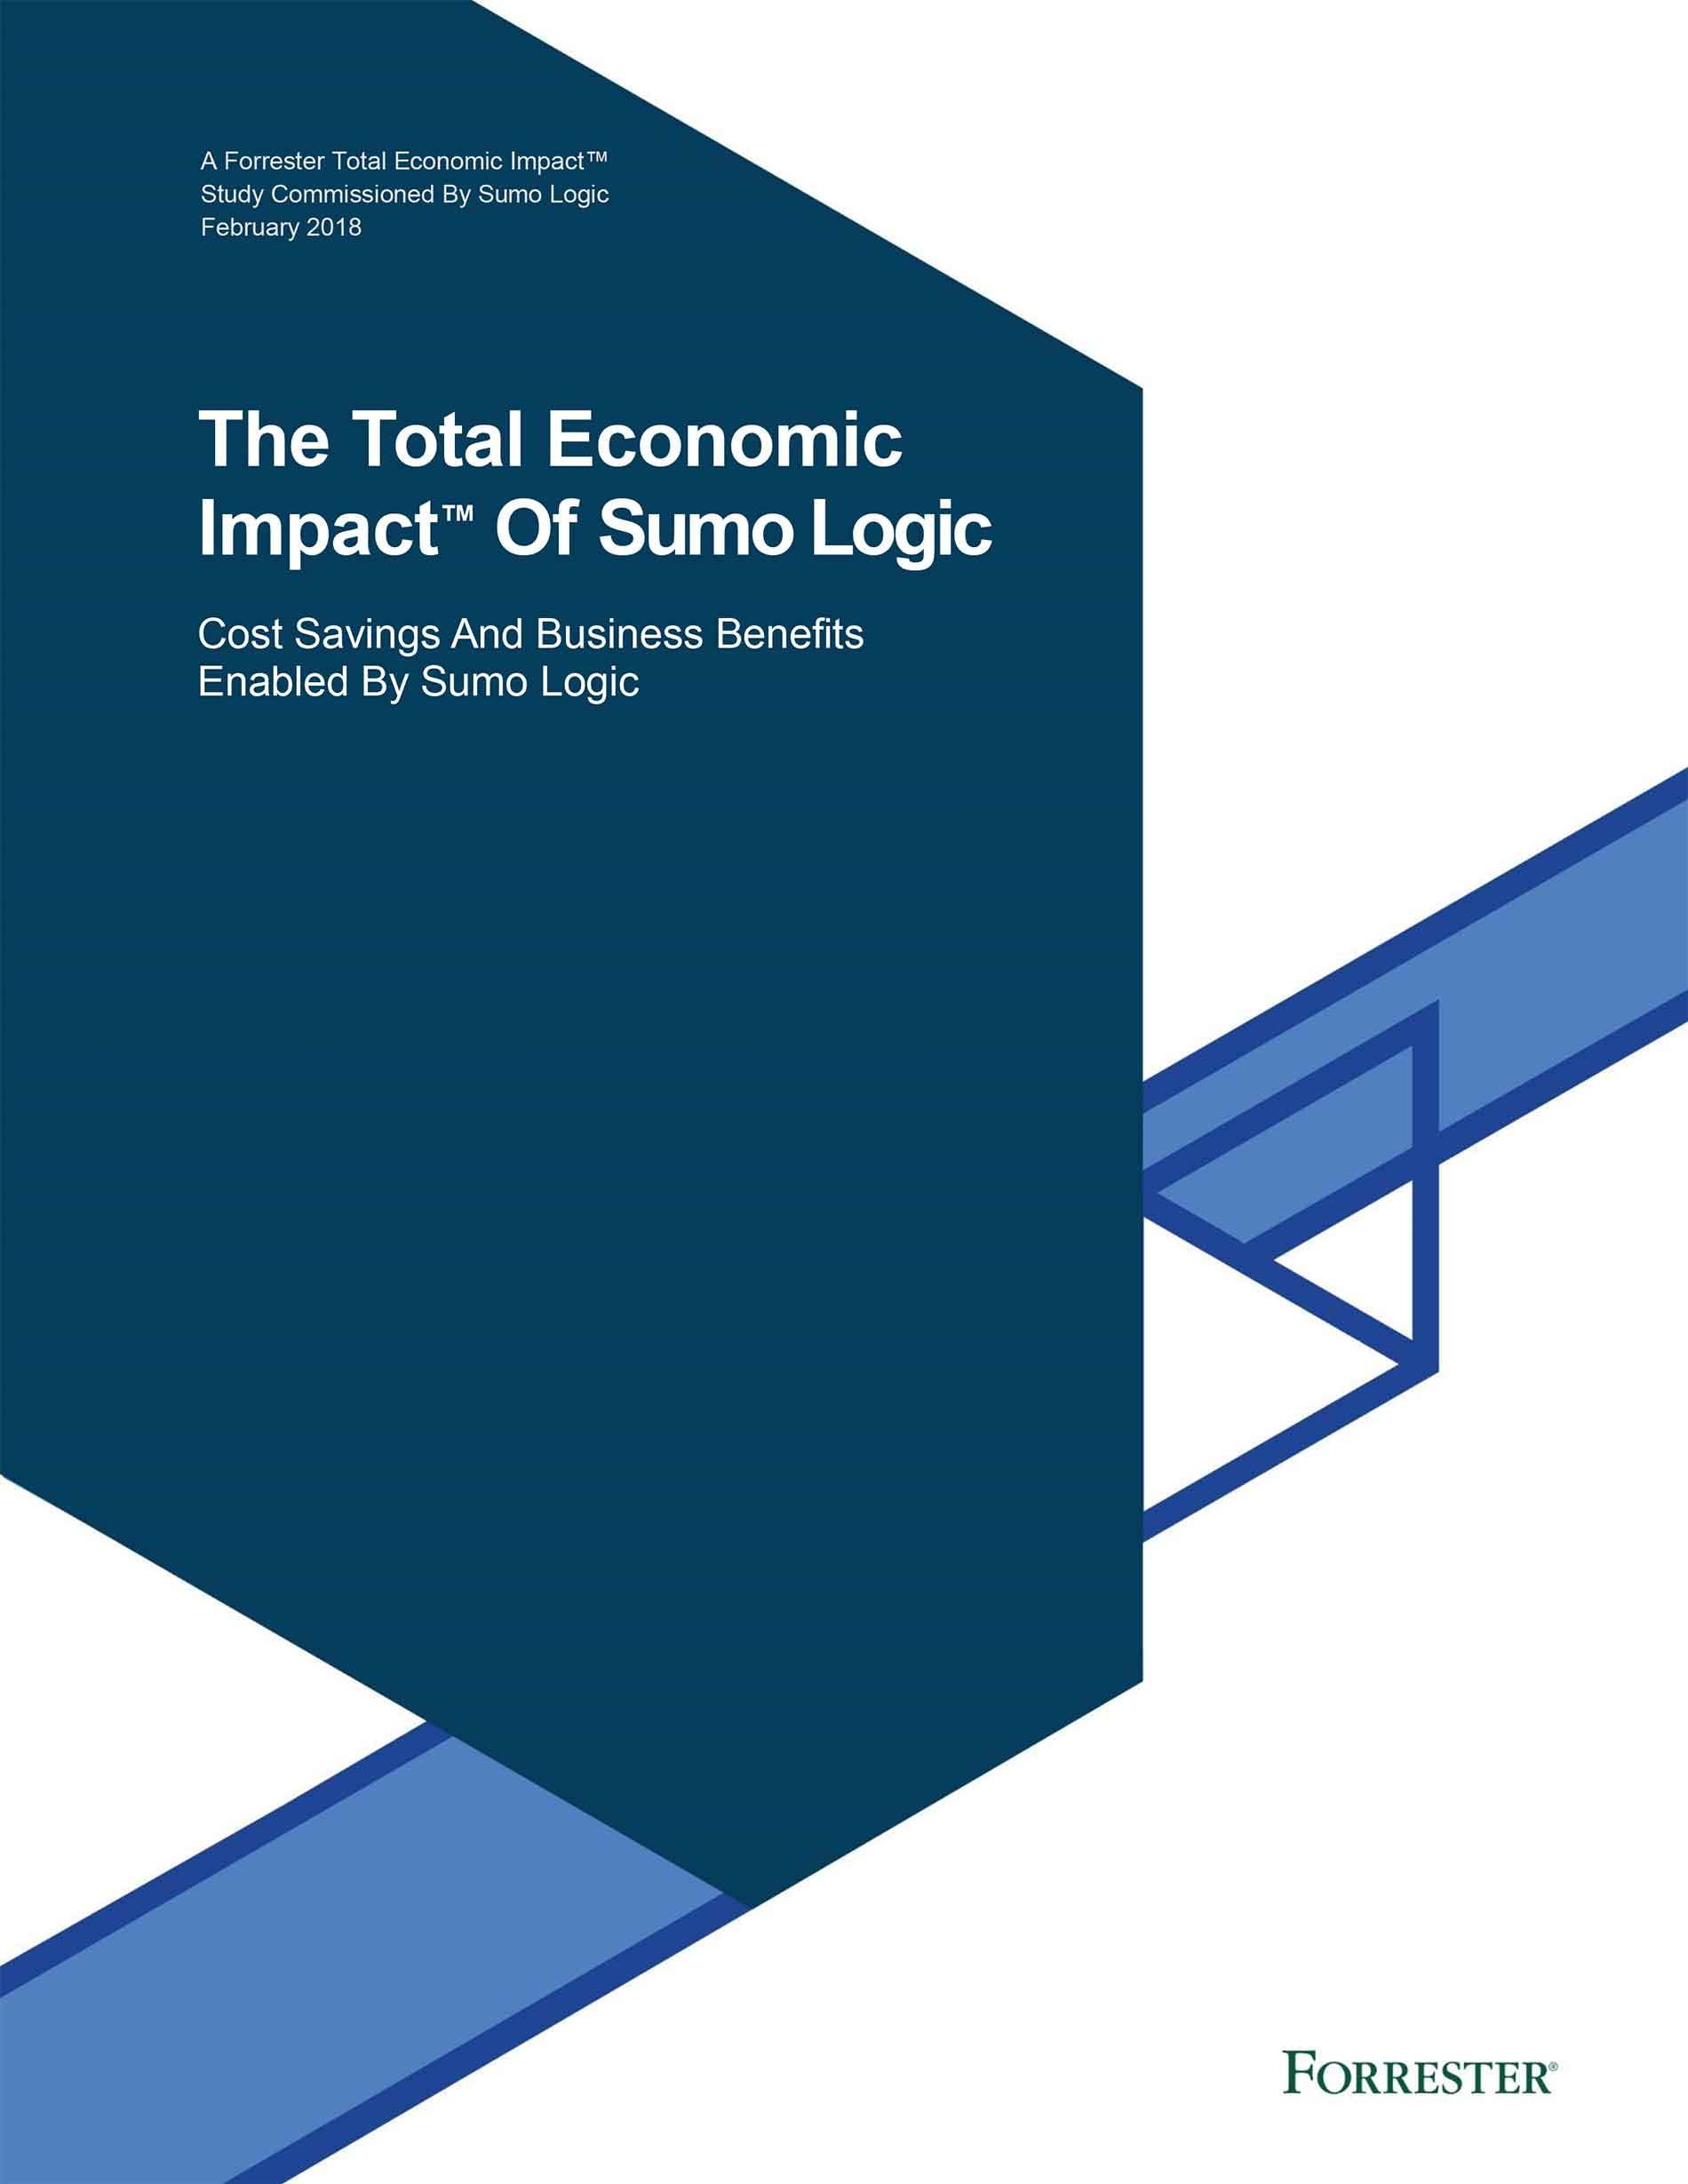 Forrester Total Economic Impact of Sumo Logic